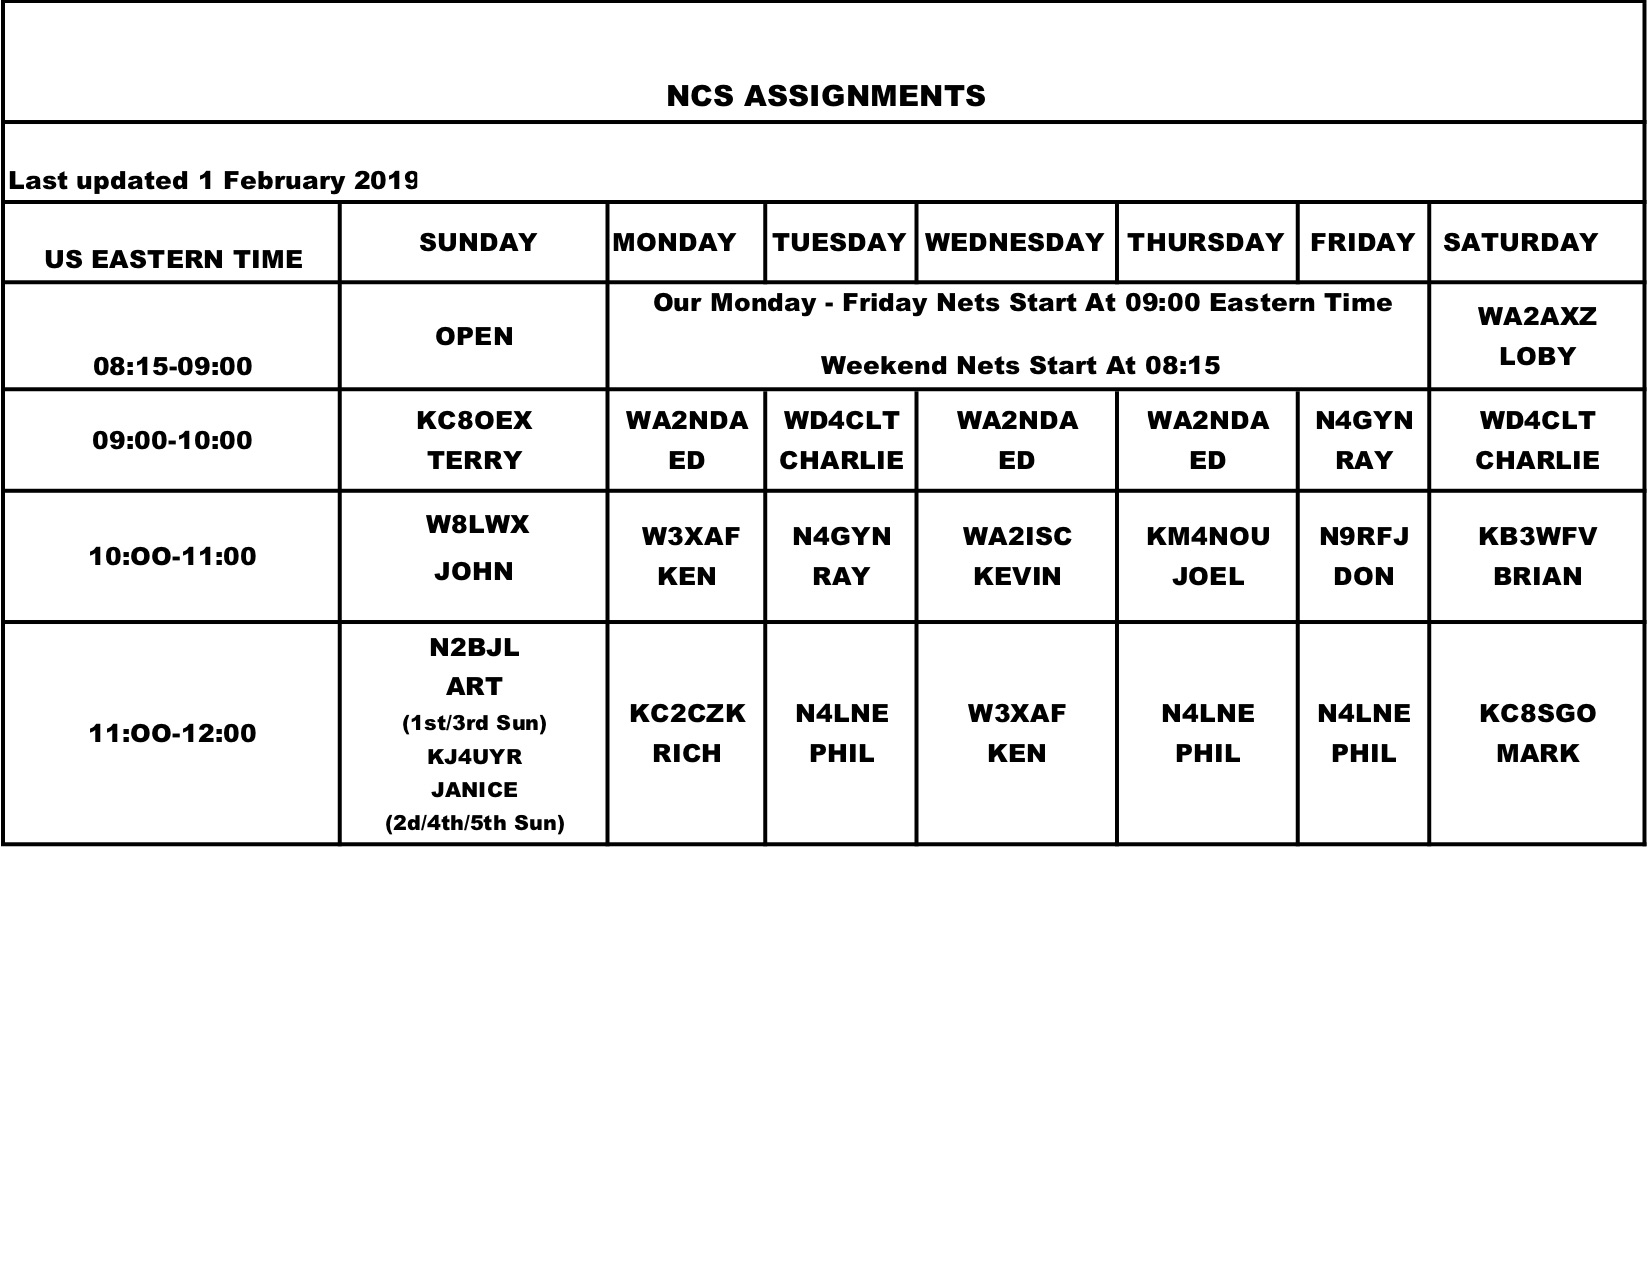 NCS assignments